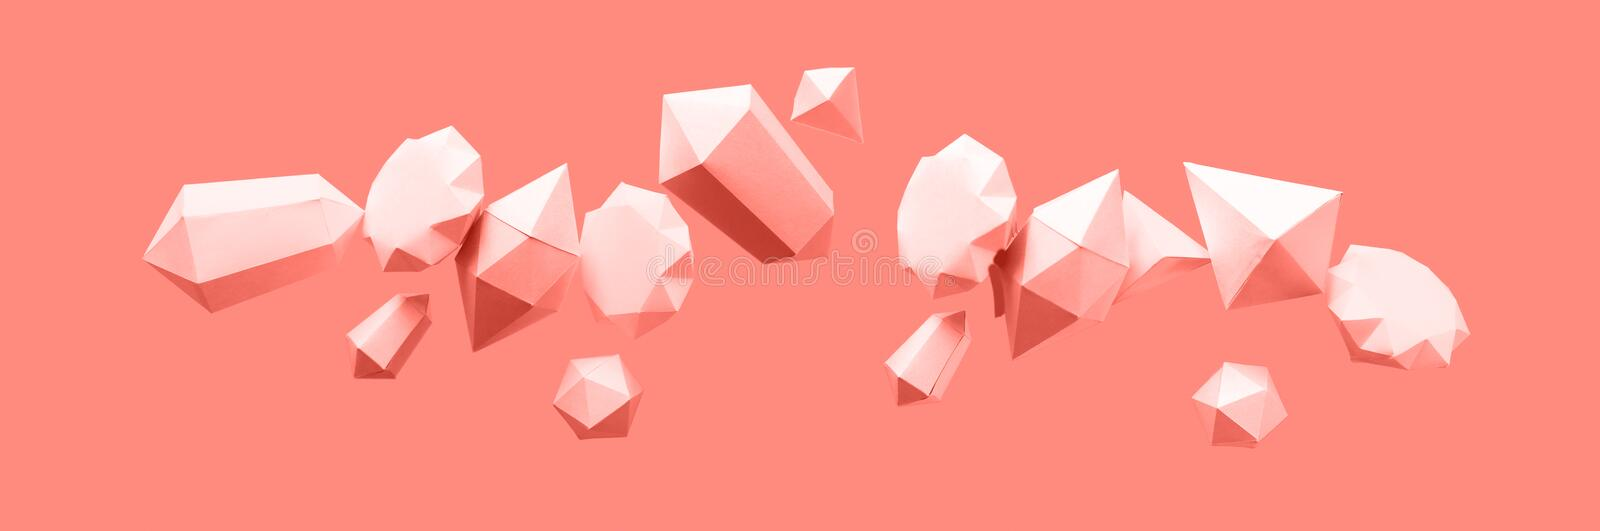 Polygonal diamonds made of paper on a blue background. Jewelry concept. Levitation Toned trendy coral stock image